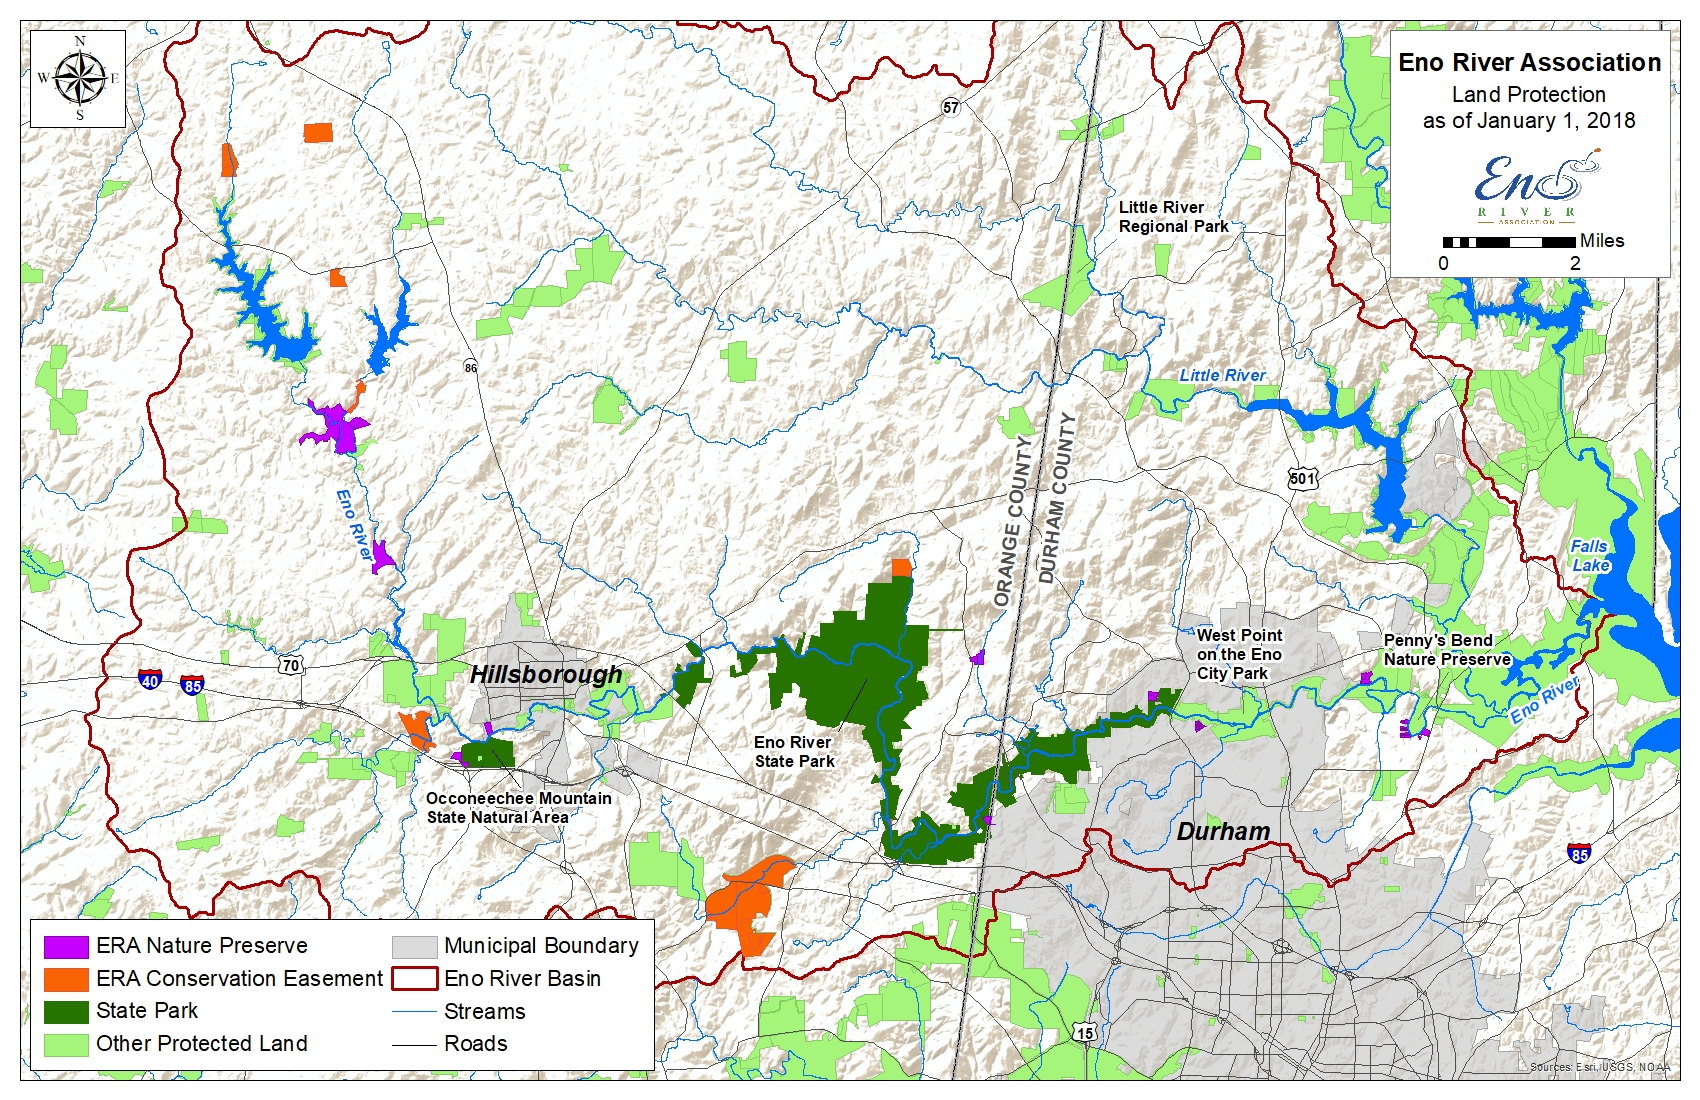 maps « Eno River Association – Education, Advocacy & Conservation